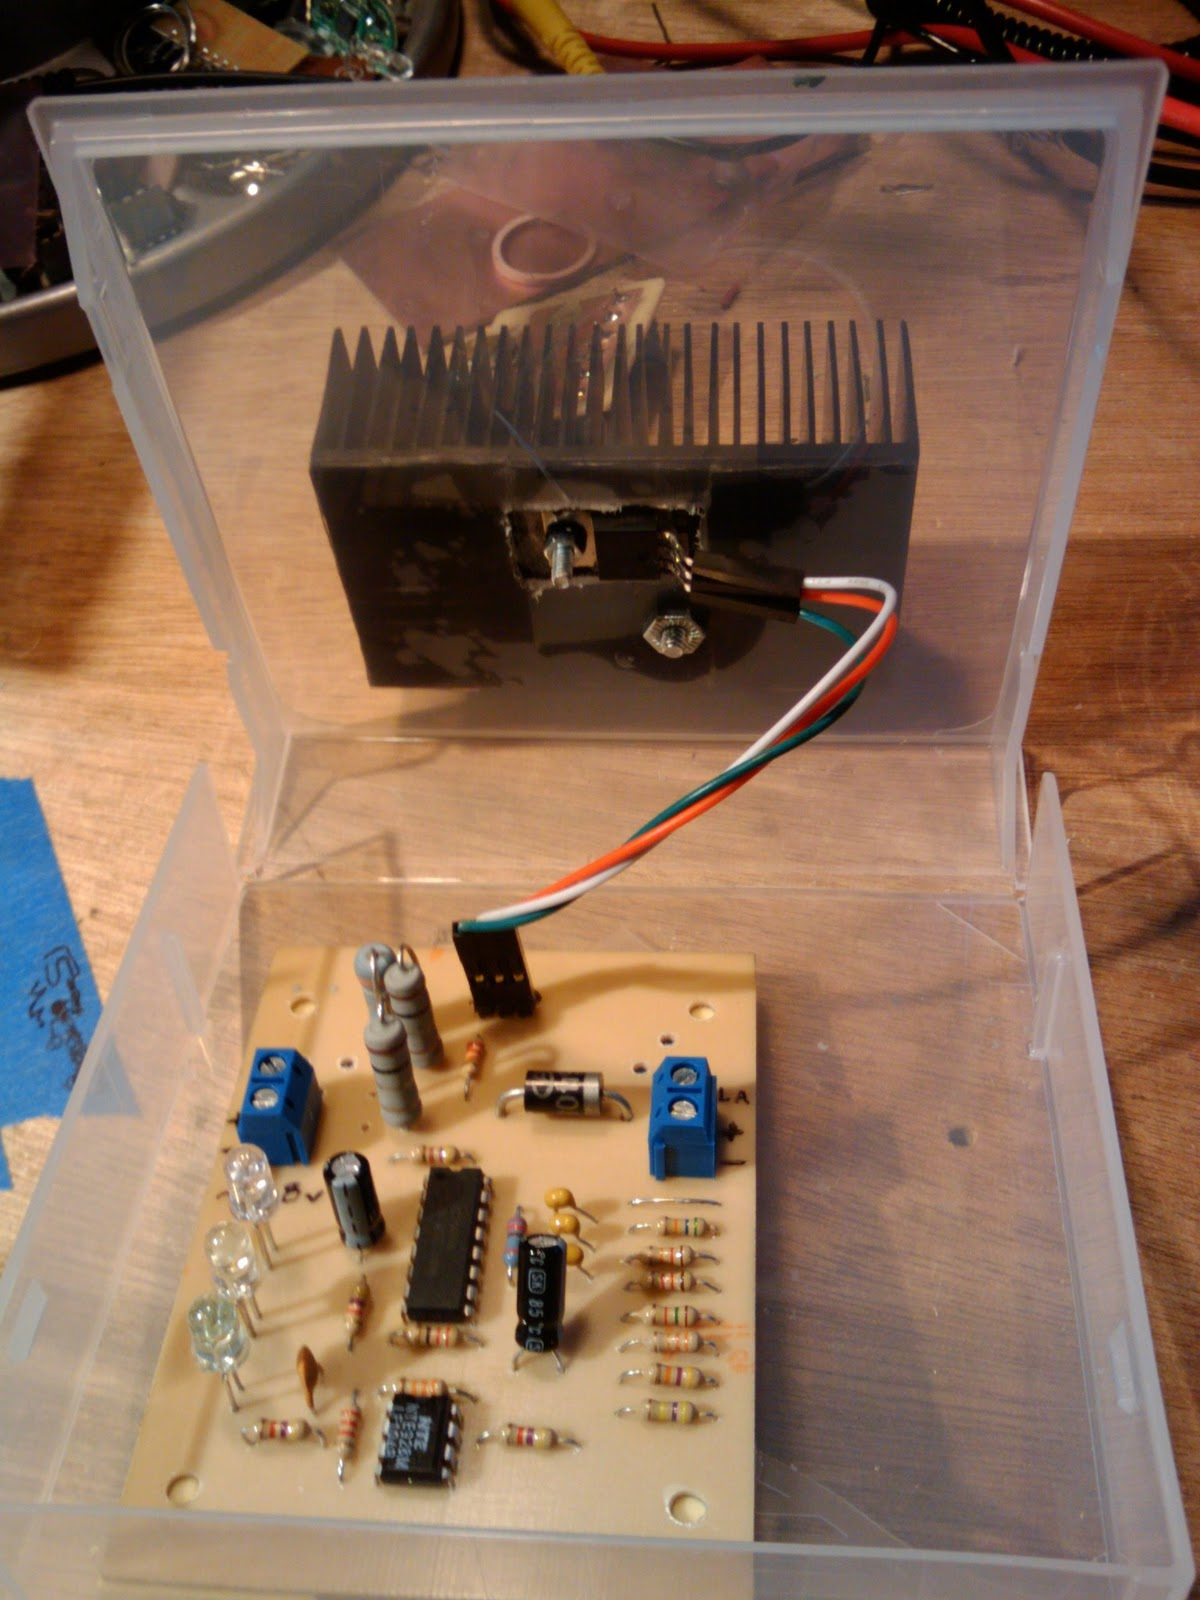 Slinky 6v Sealed Lead Acid Battery Charger Uc3906 Based Details About 2v 12v Leadacid Sla Mains I Used A Smaller Heatsink While Prototyping And At Full Current Over Charge Mode It Ran Just Under 200 Degrees F This Thing Runs 97